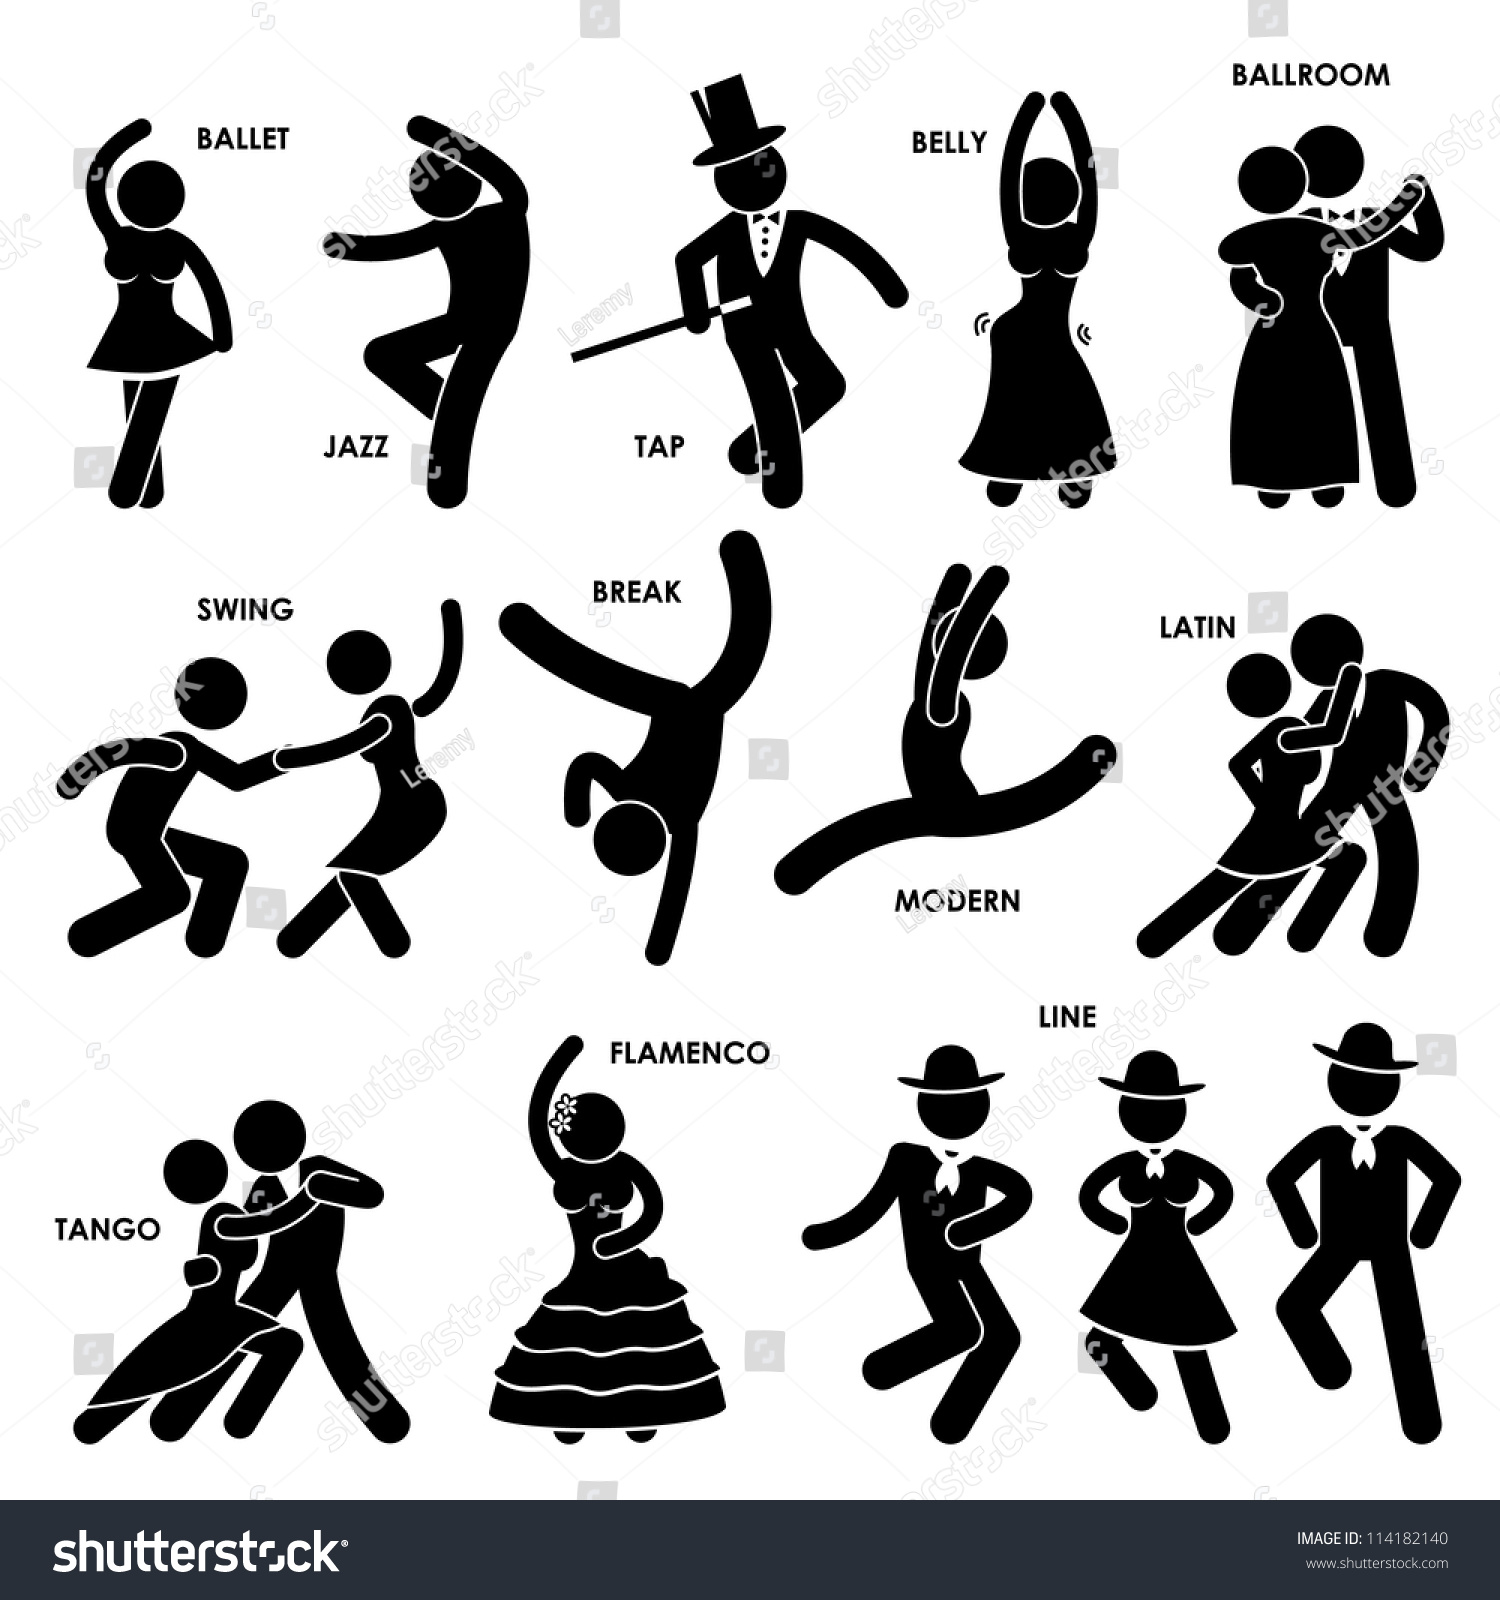 Dancing Dancer Ballet Jazz Tap Belly Stock Illustration